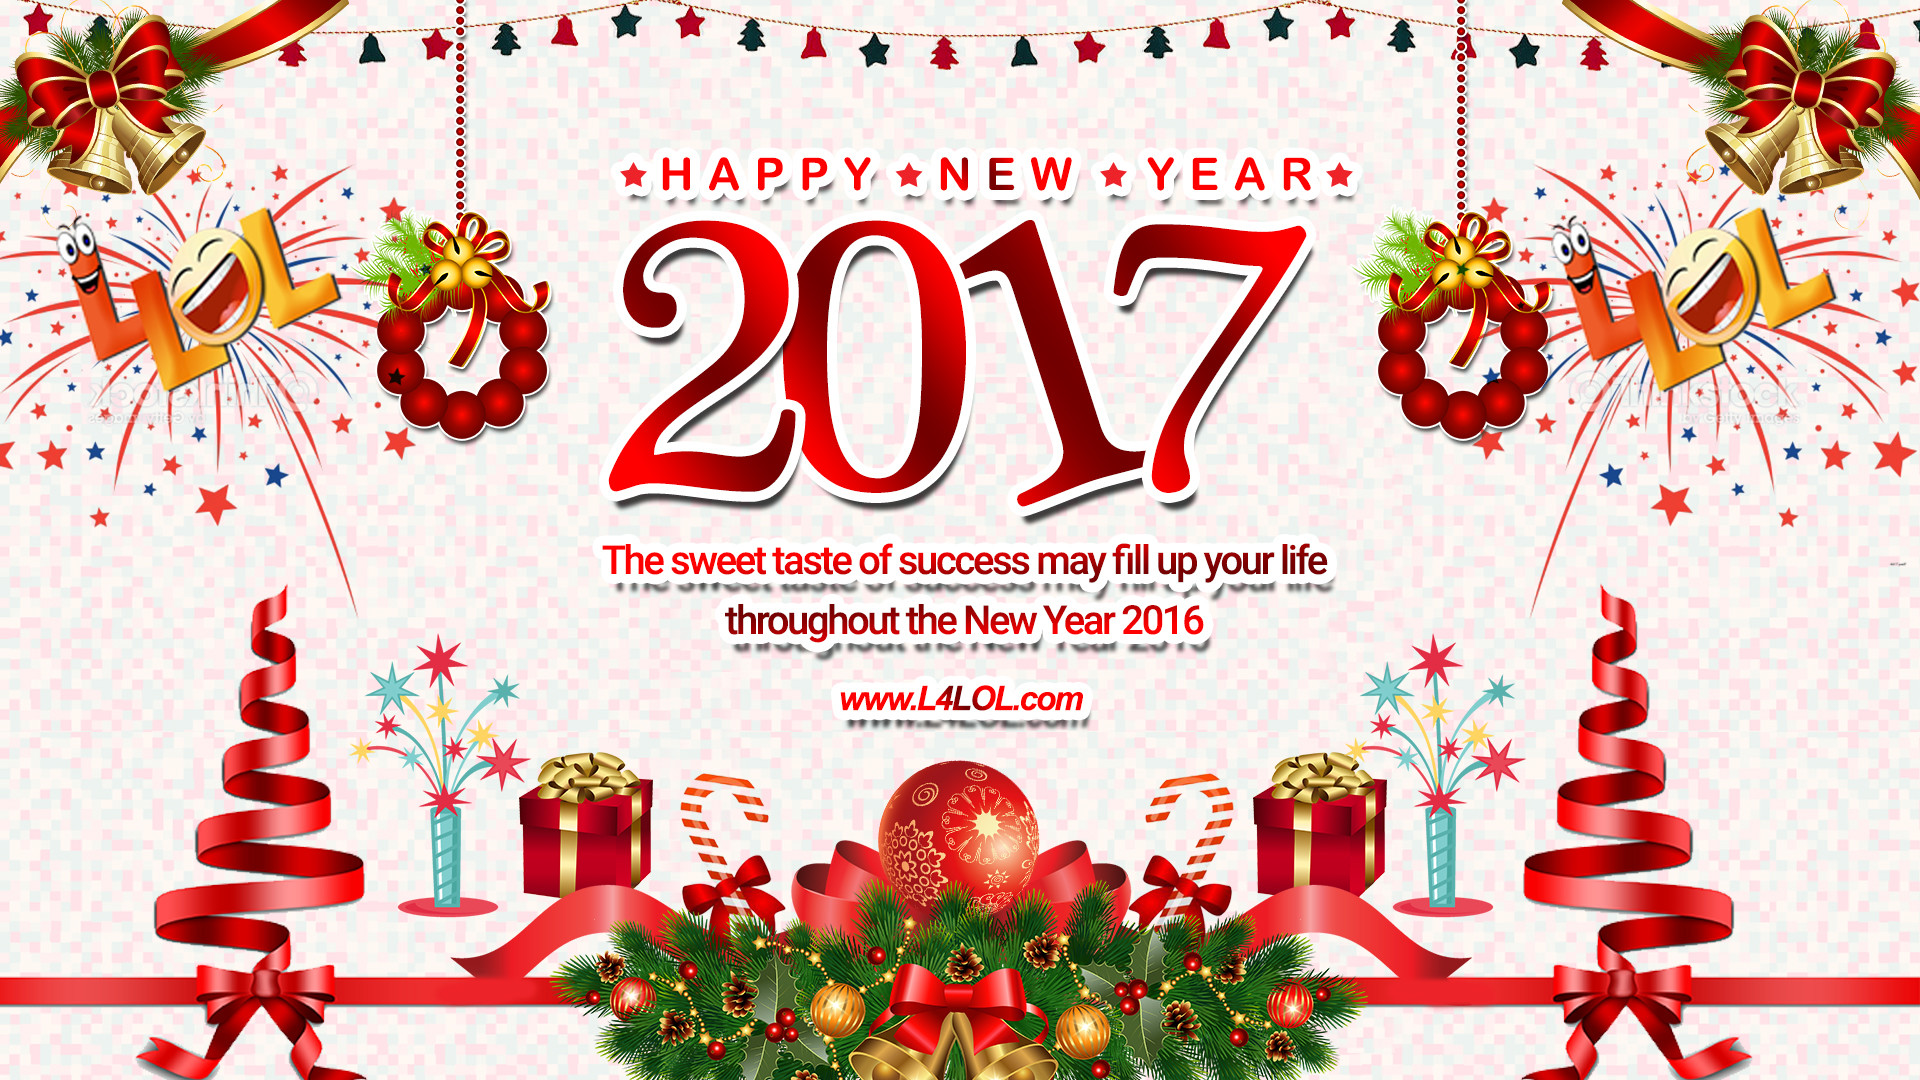 Happy New Year 2017 GIF Images and Share Download Free – https://www